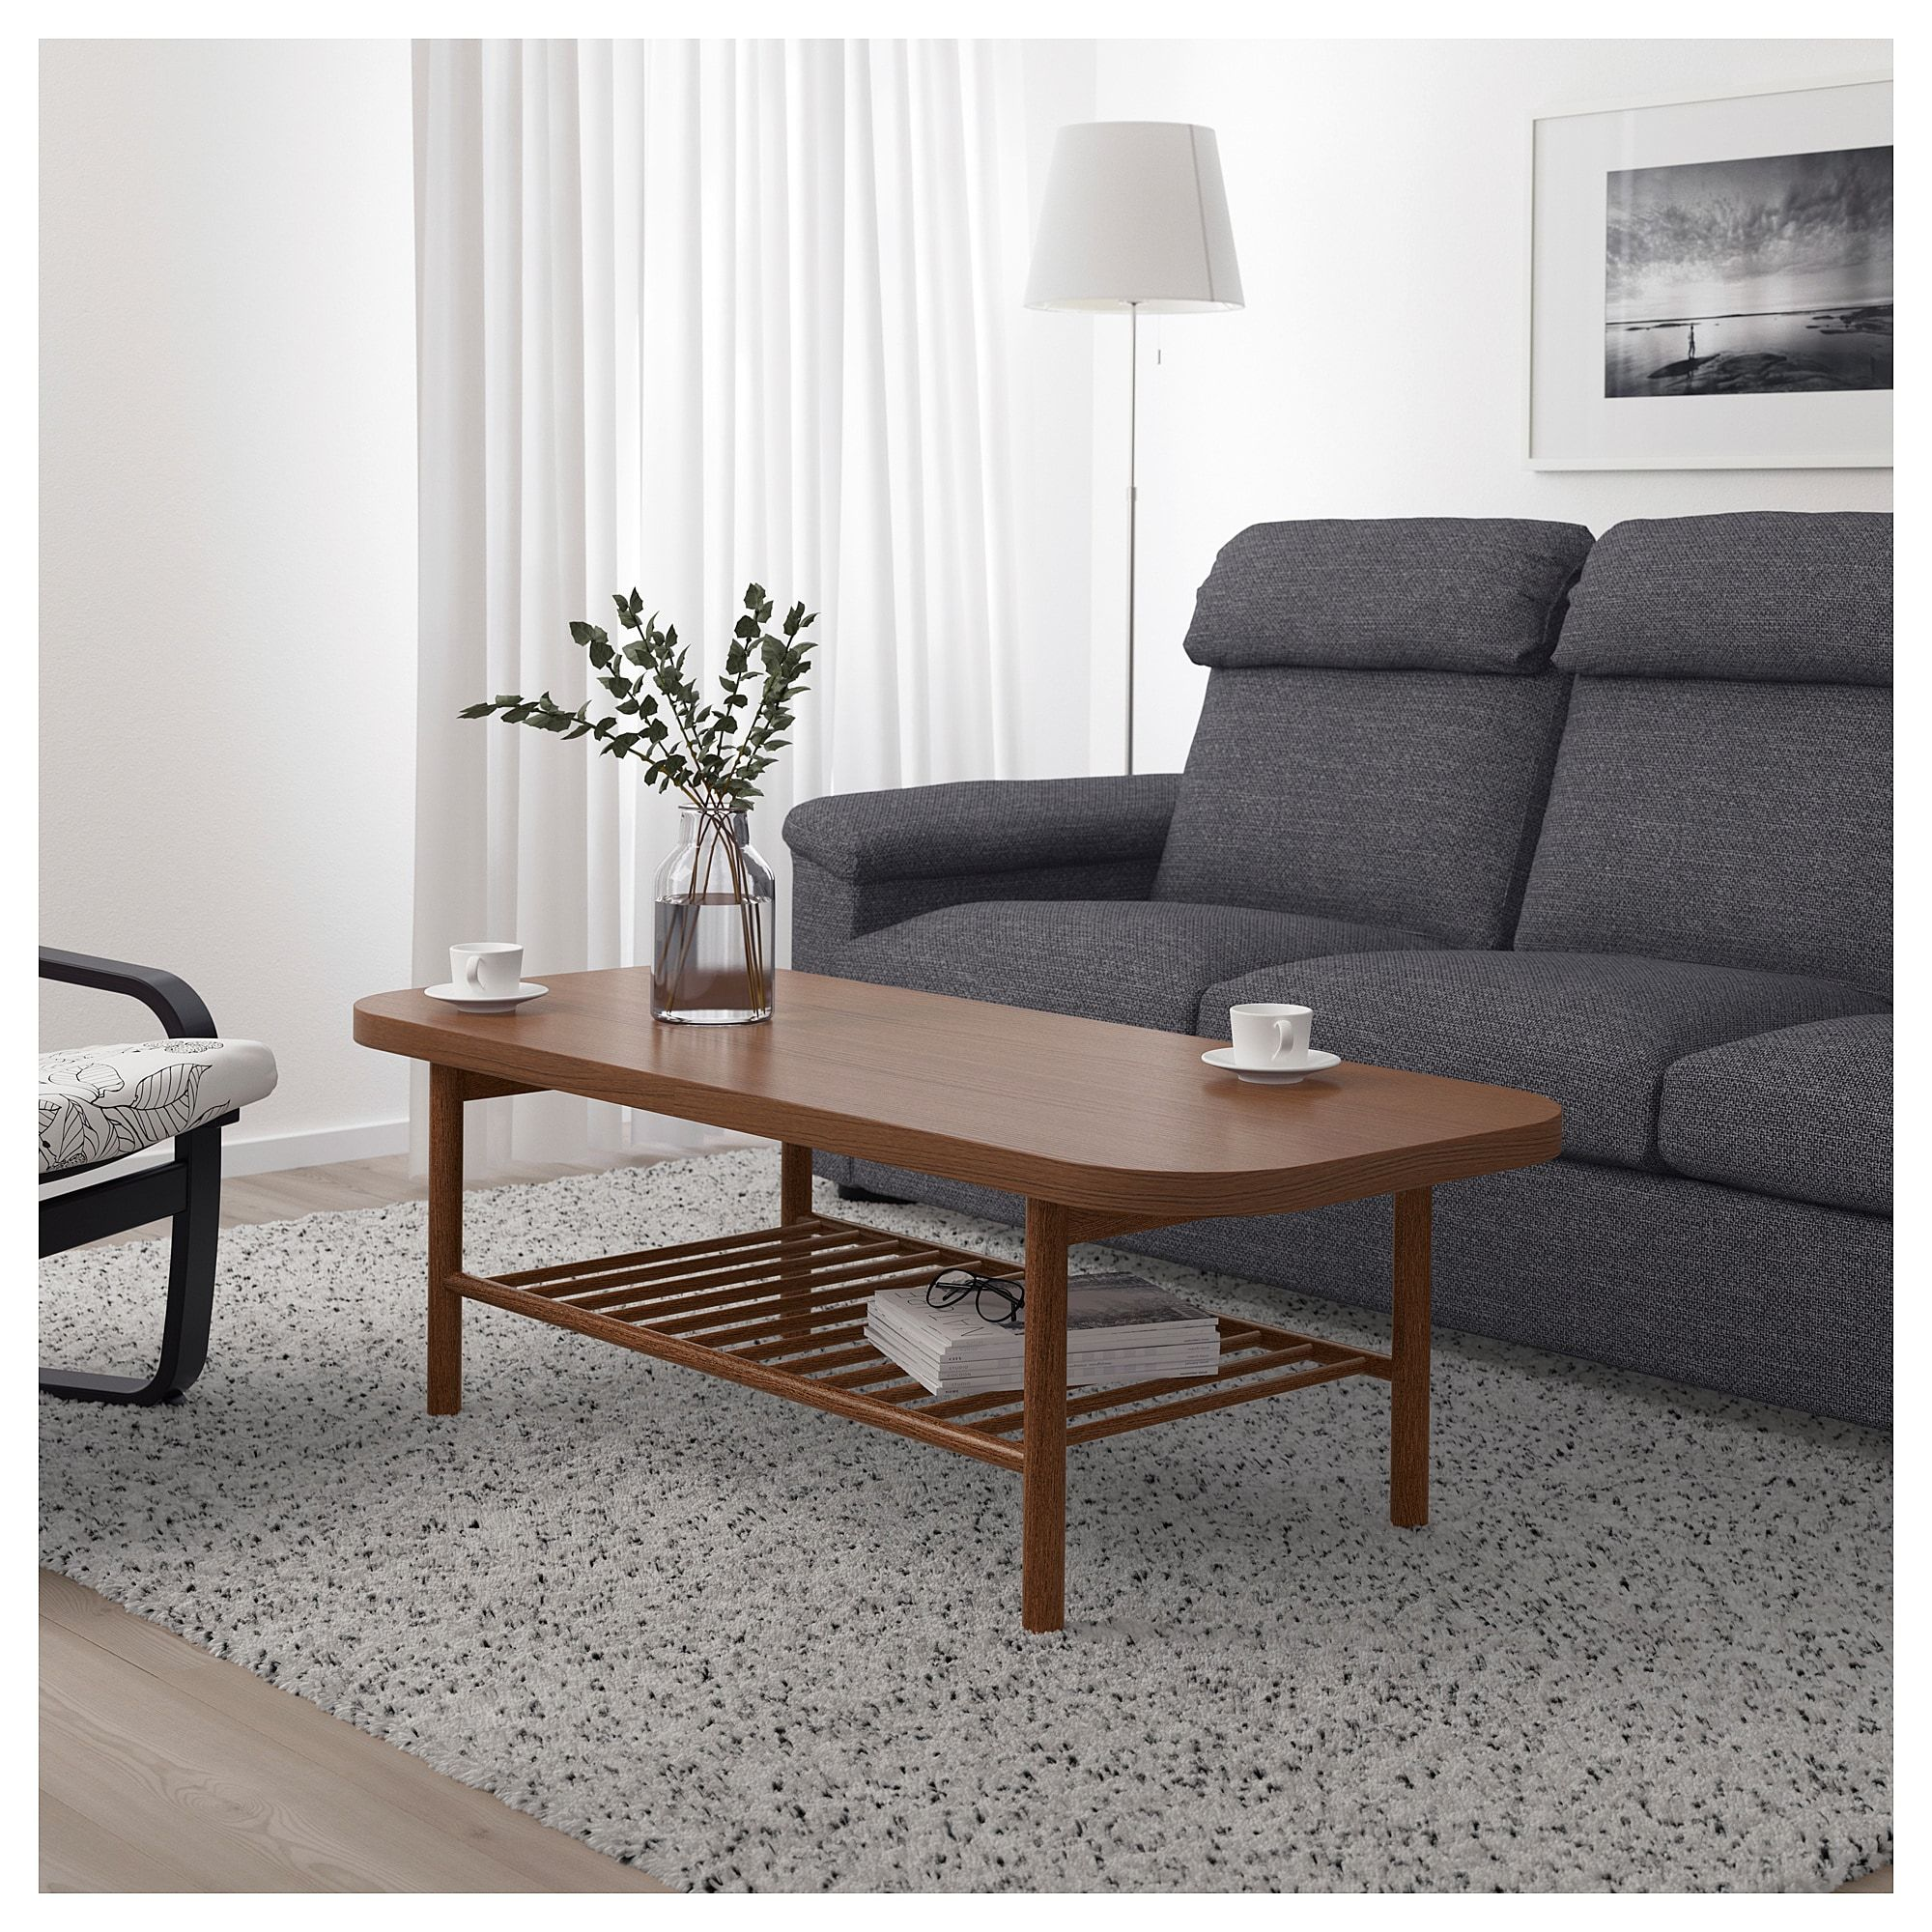 Listerby Coffee Table Brown 55 1 8x23 5 8 Ikea Coffee Table Ikea Coffee Table Wooden Coffee Table Designs [ 2000 x 2000 Pixel ]